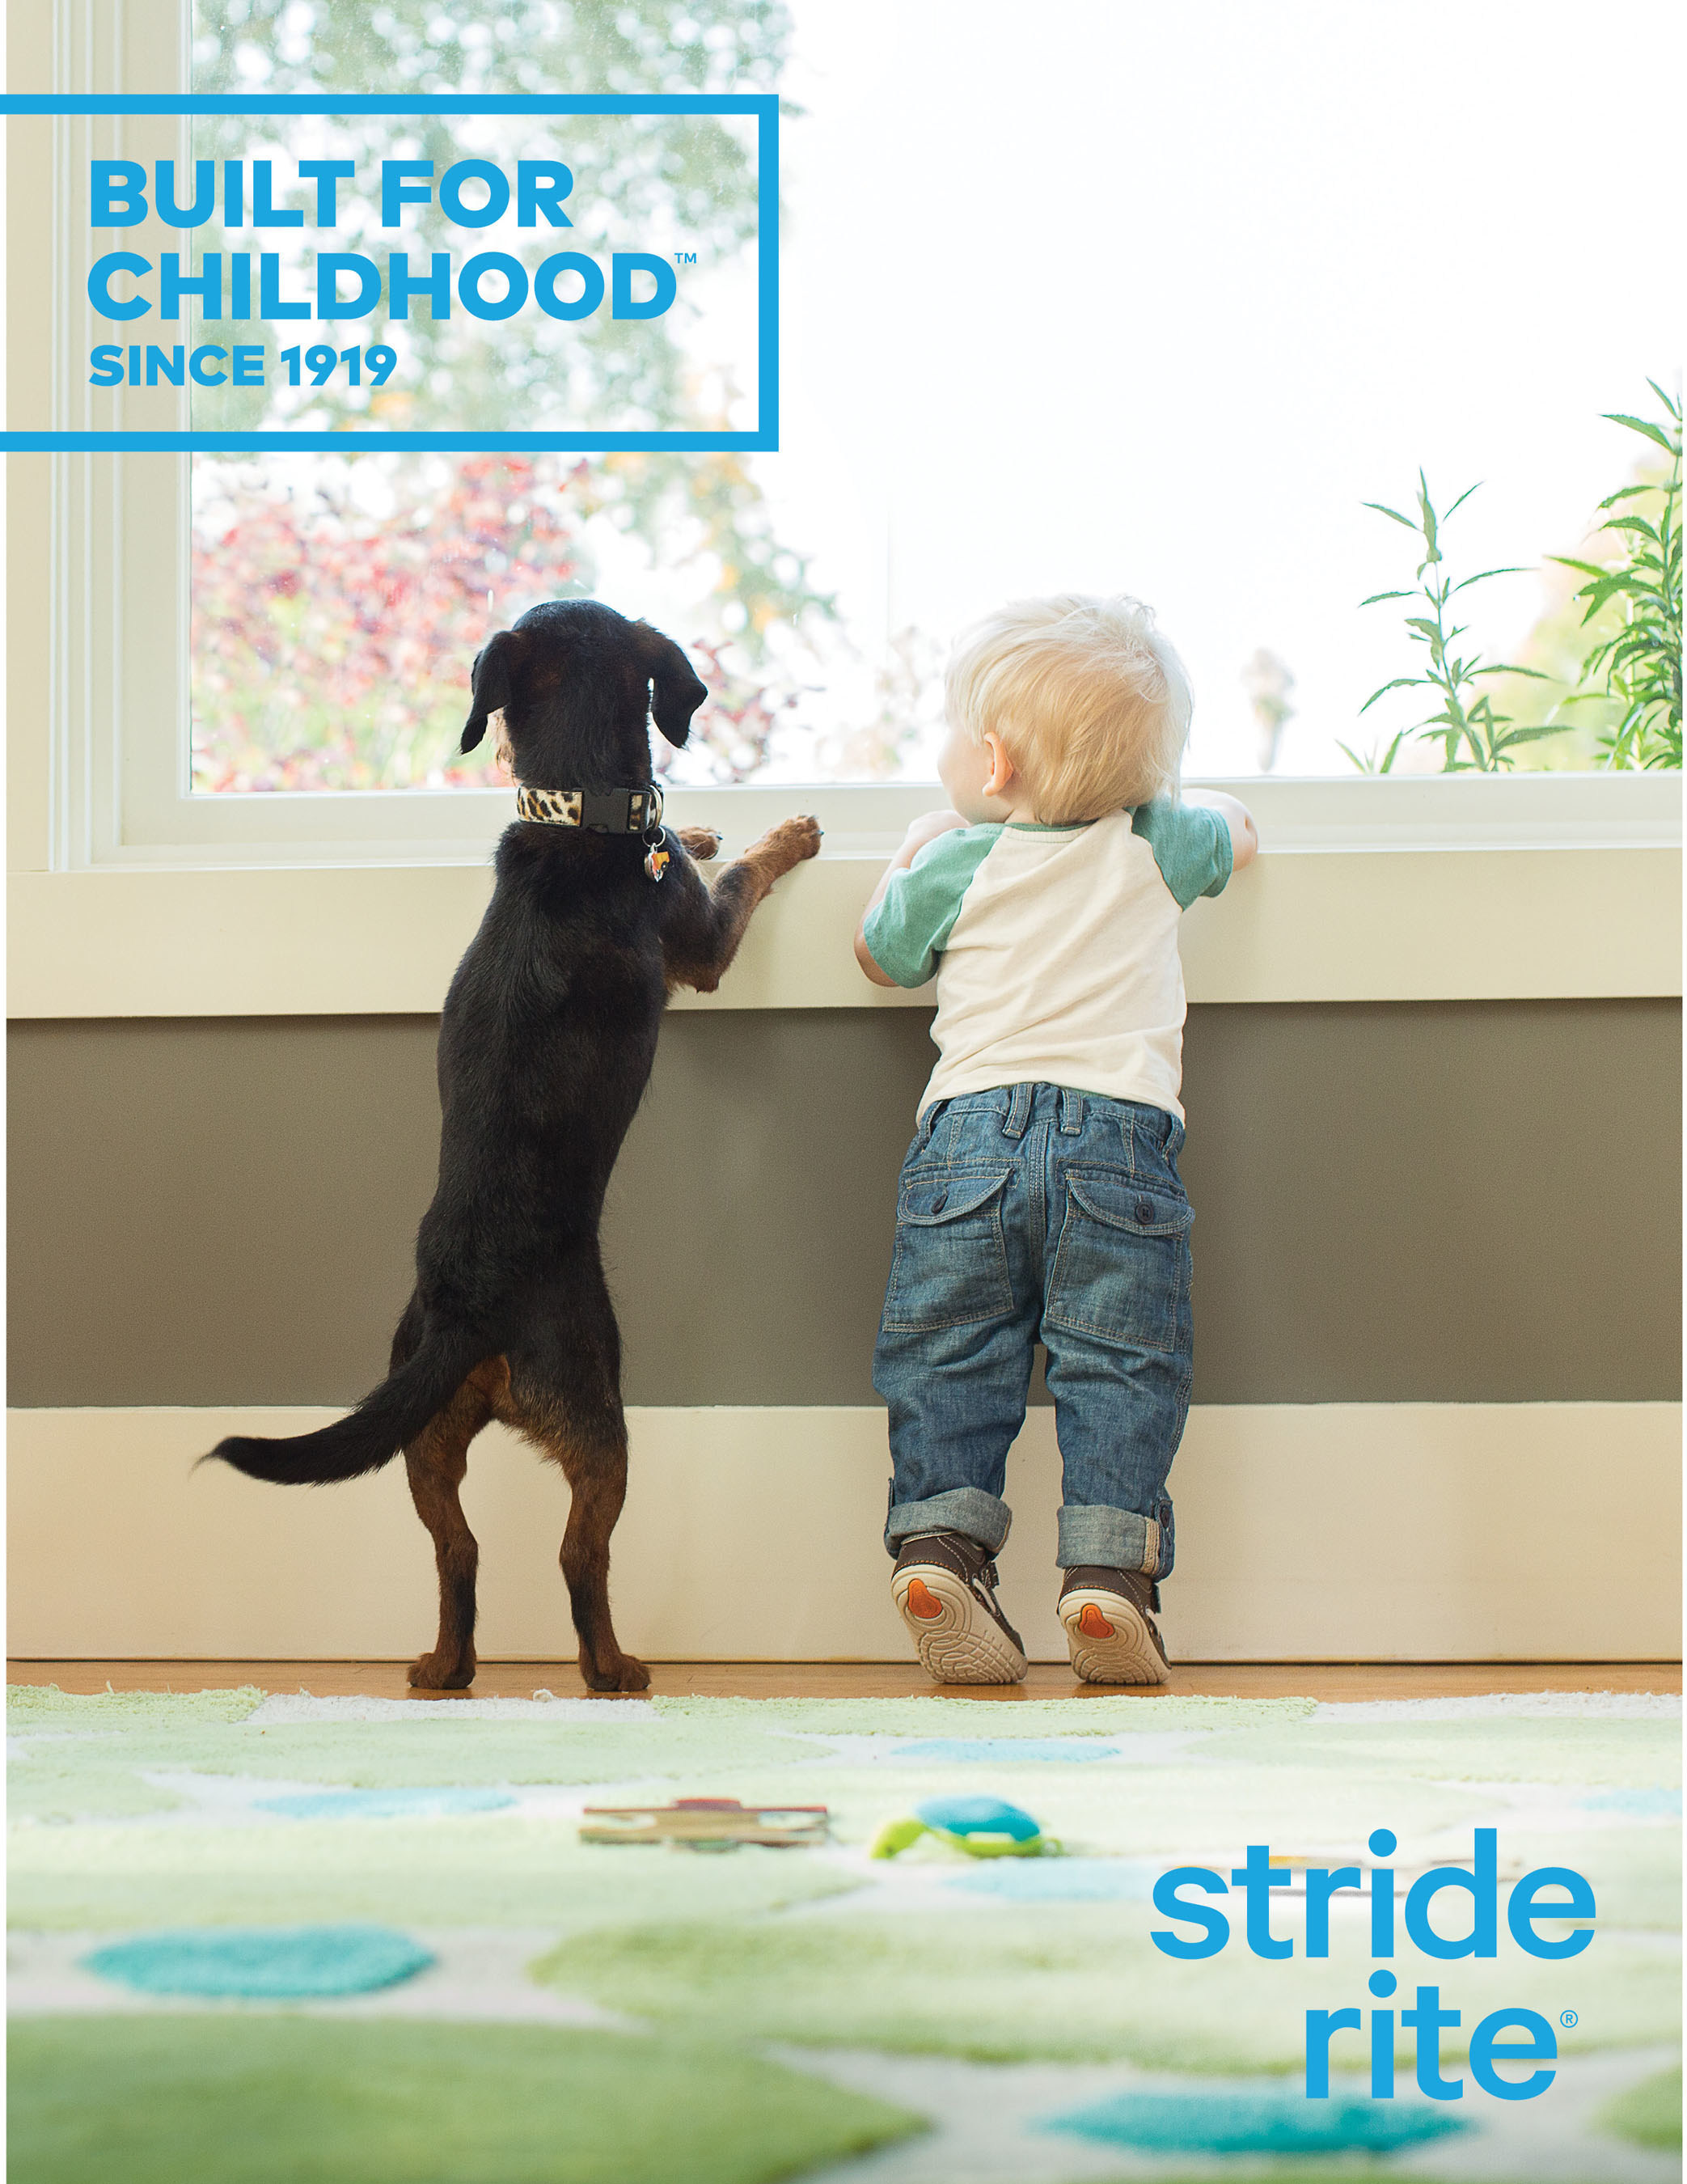 STRIDE RITE SELECTS 360 PUBLIC RELATIONS AS U.S. PR AGENCY OF RECORD